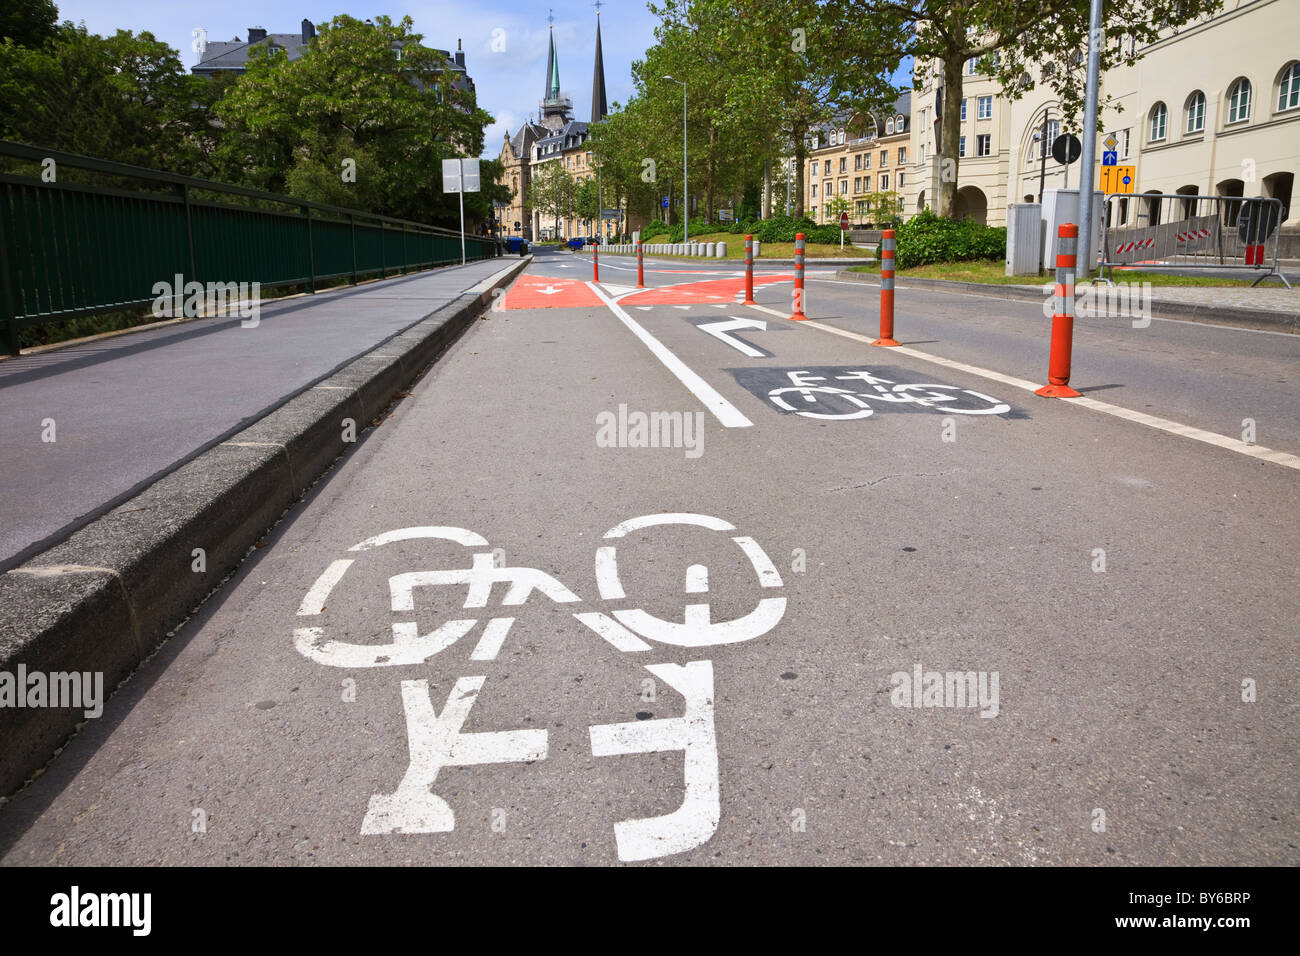 Cycle lane with painted signs marked on the road in the city of Luxembourg, Europe. - Stock Image